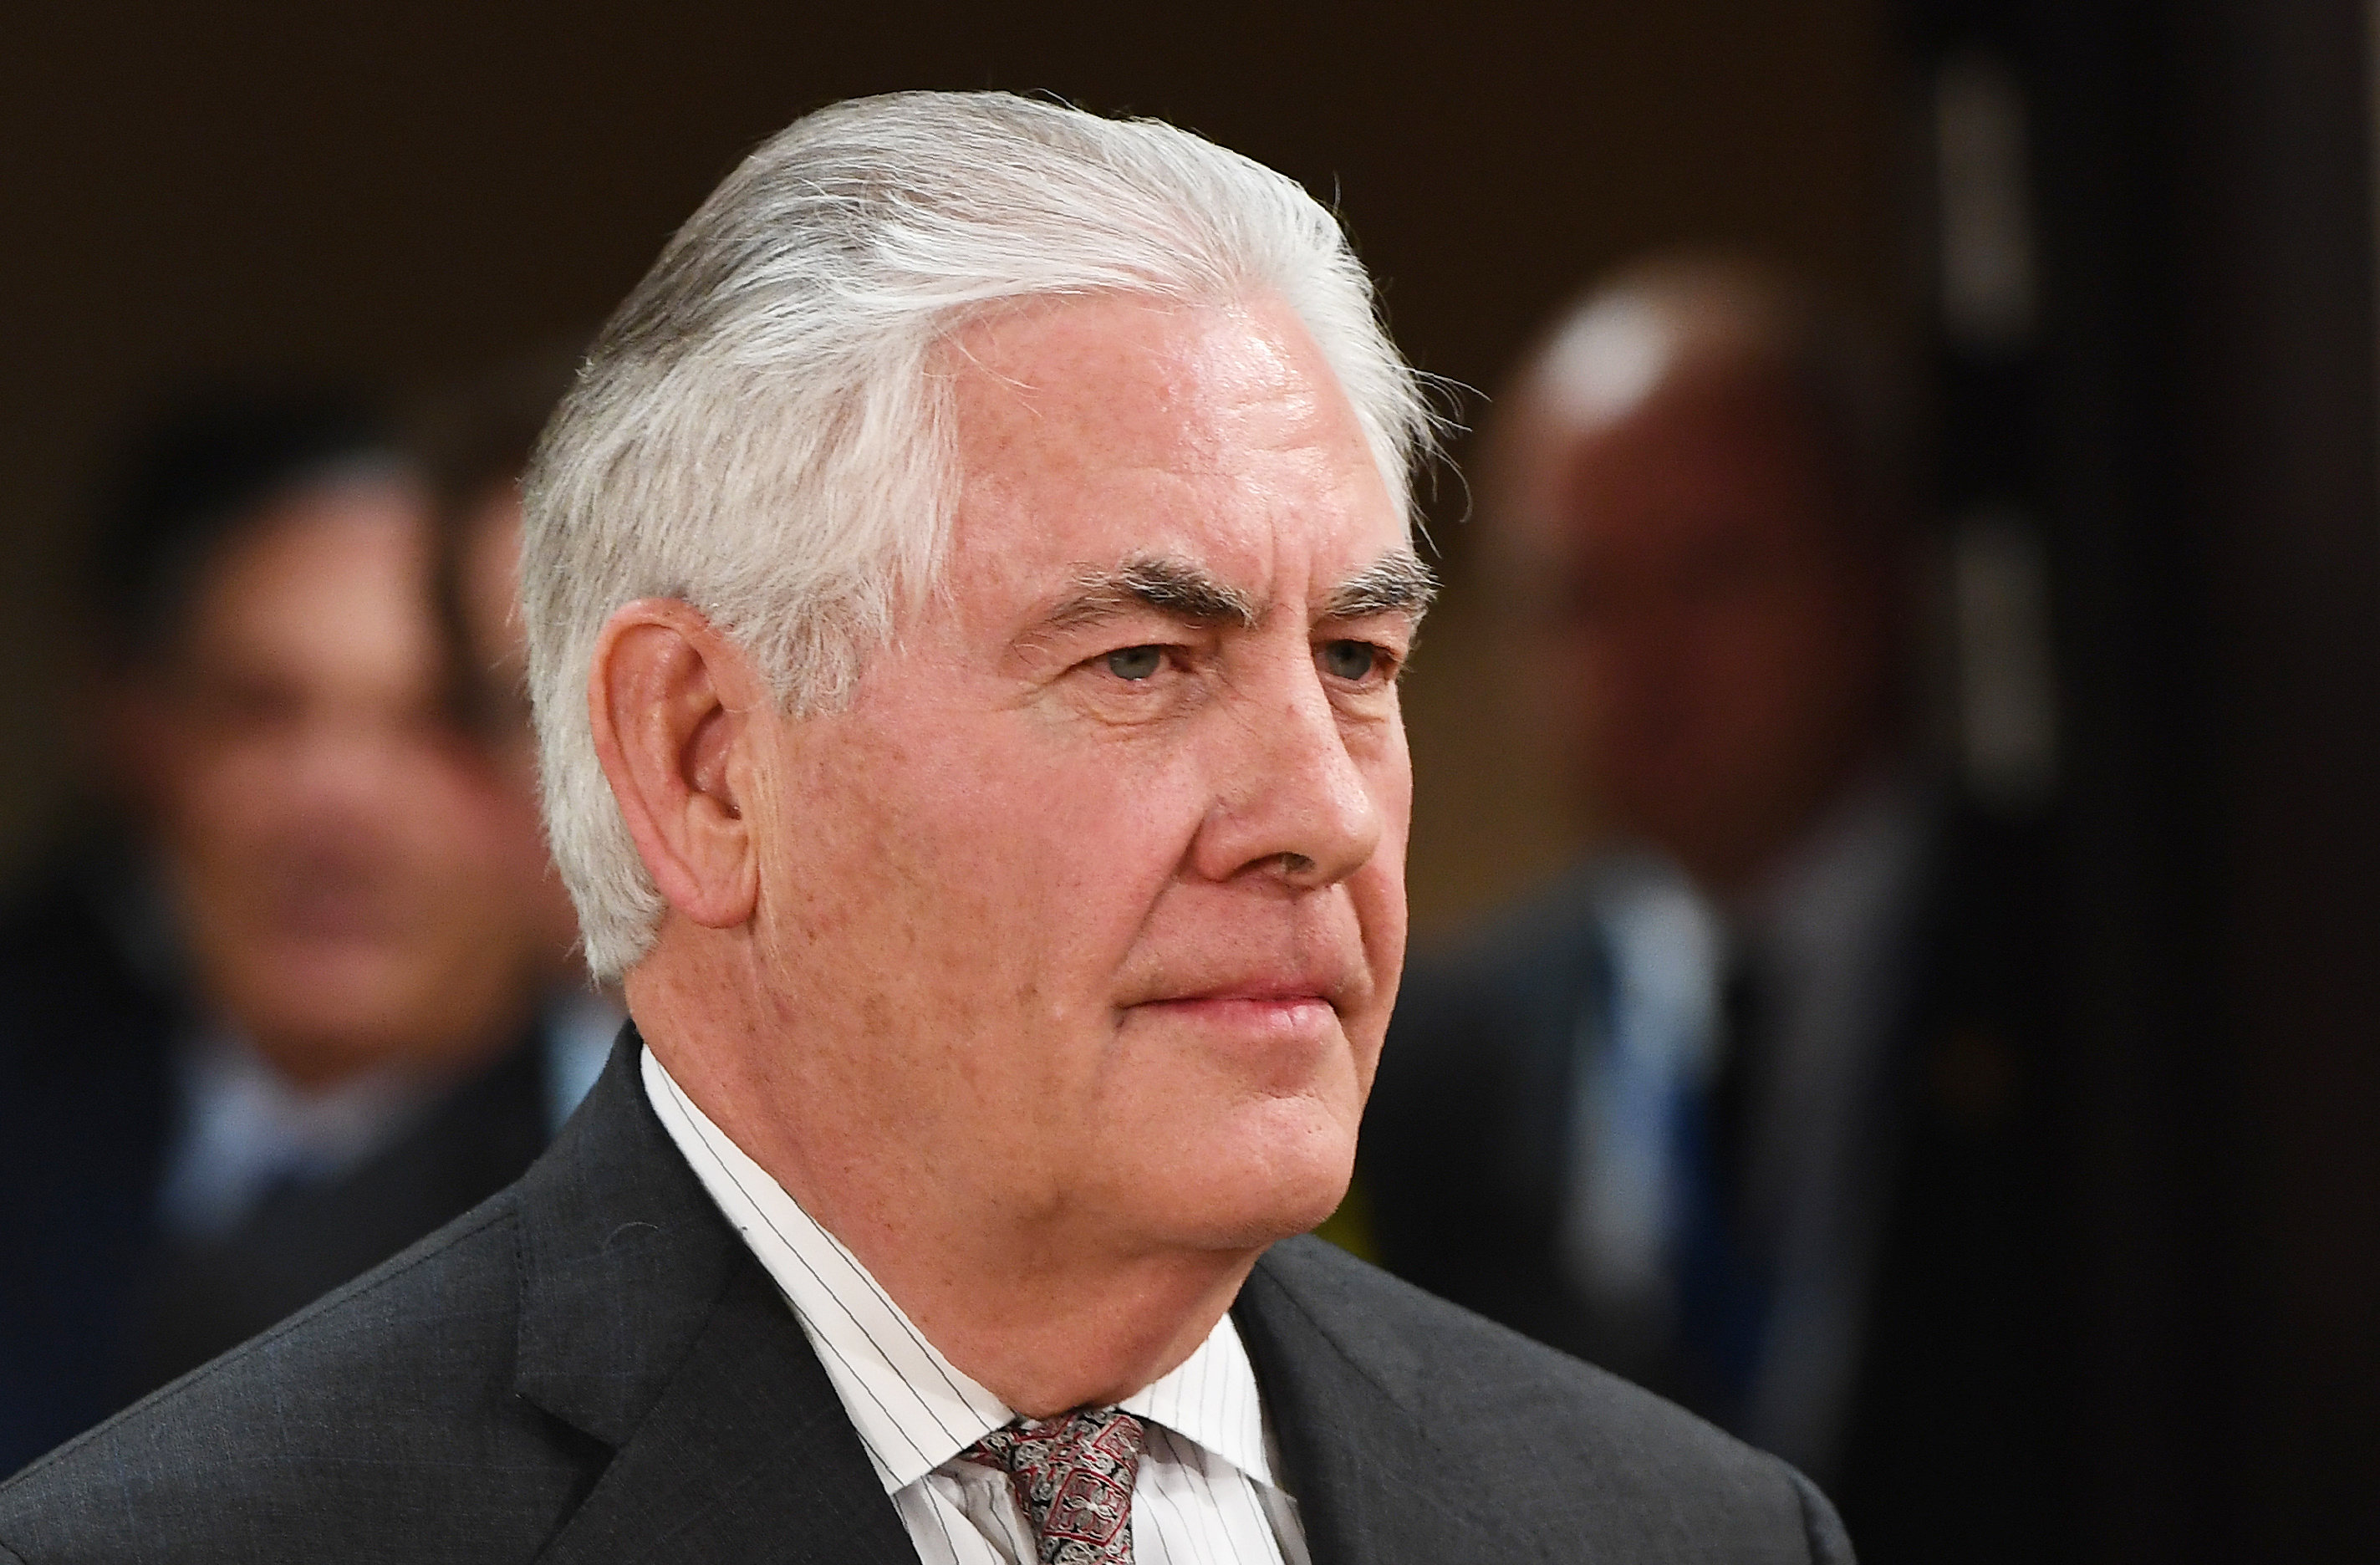 U.S. Secretary of State Rex Tillerson in Brussels on March 31, 2017.